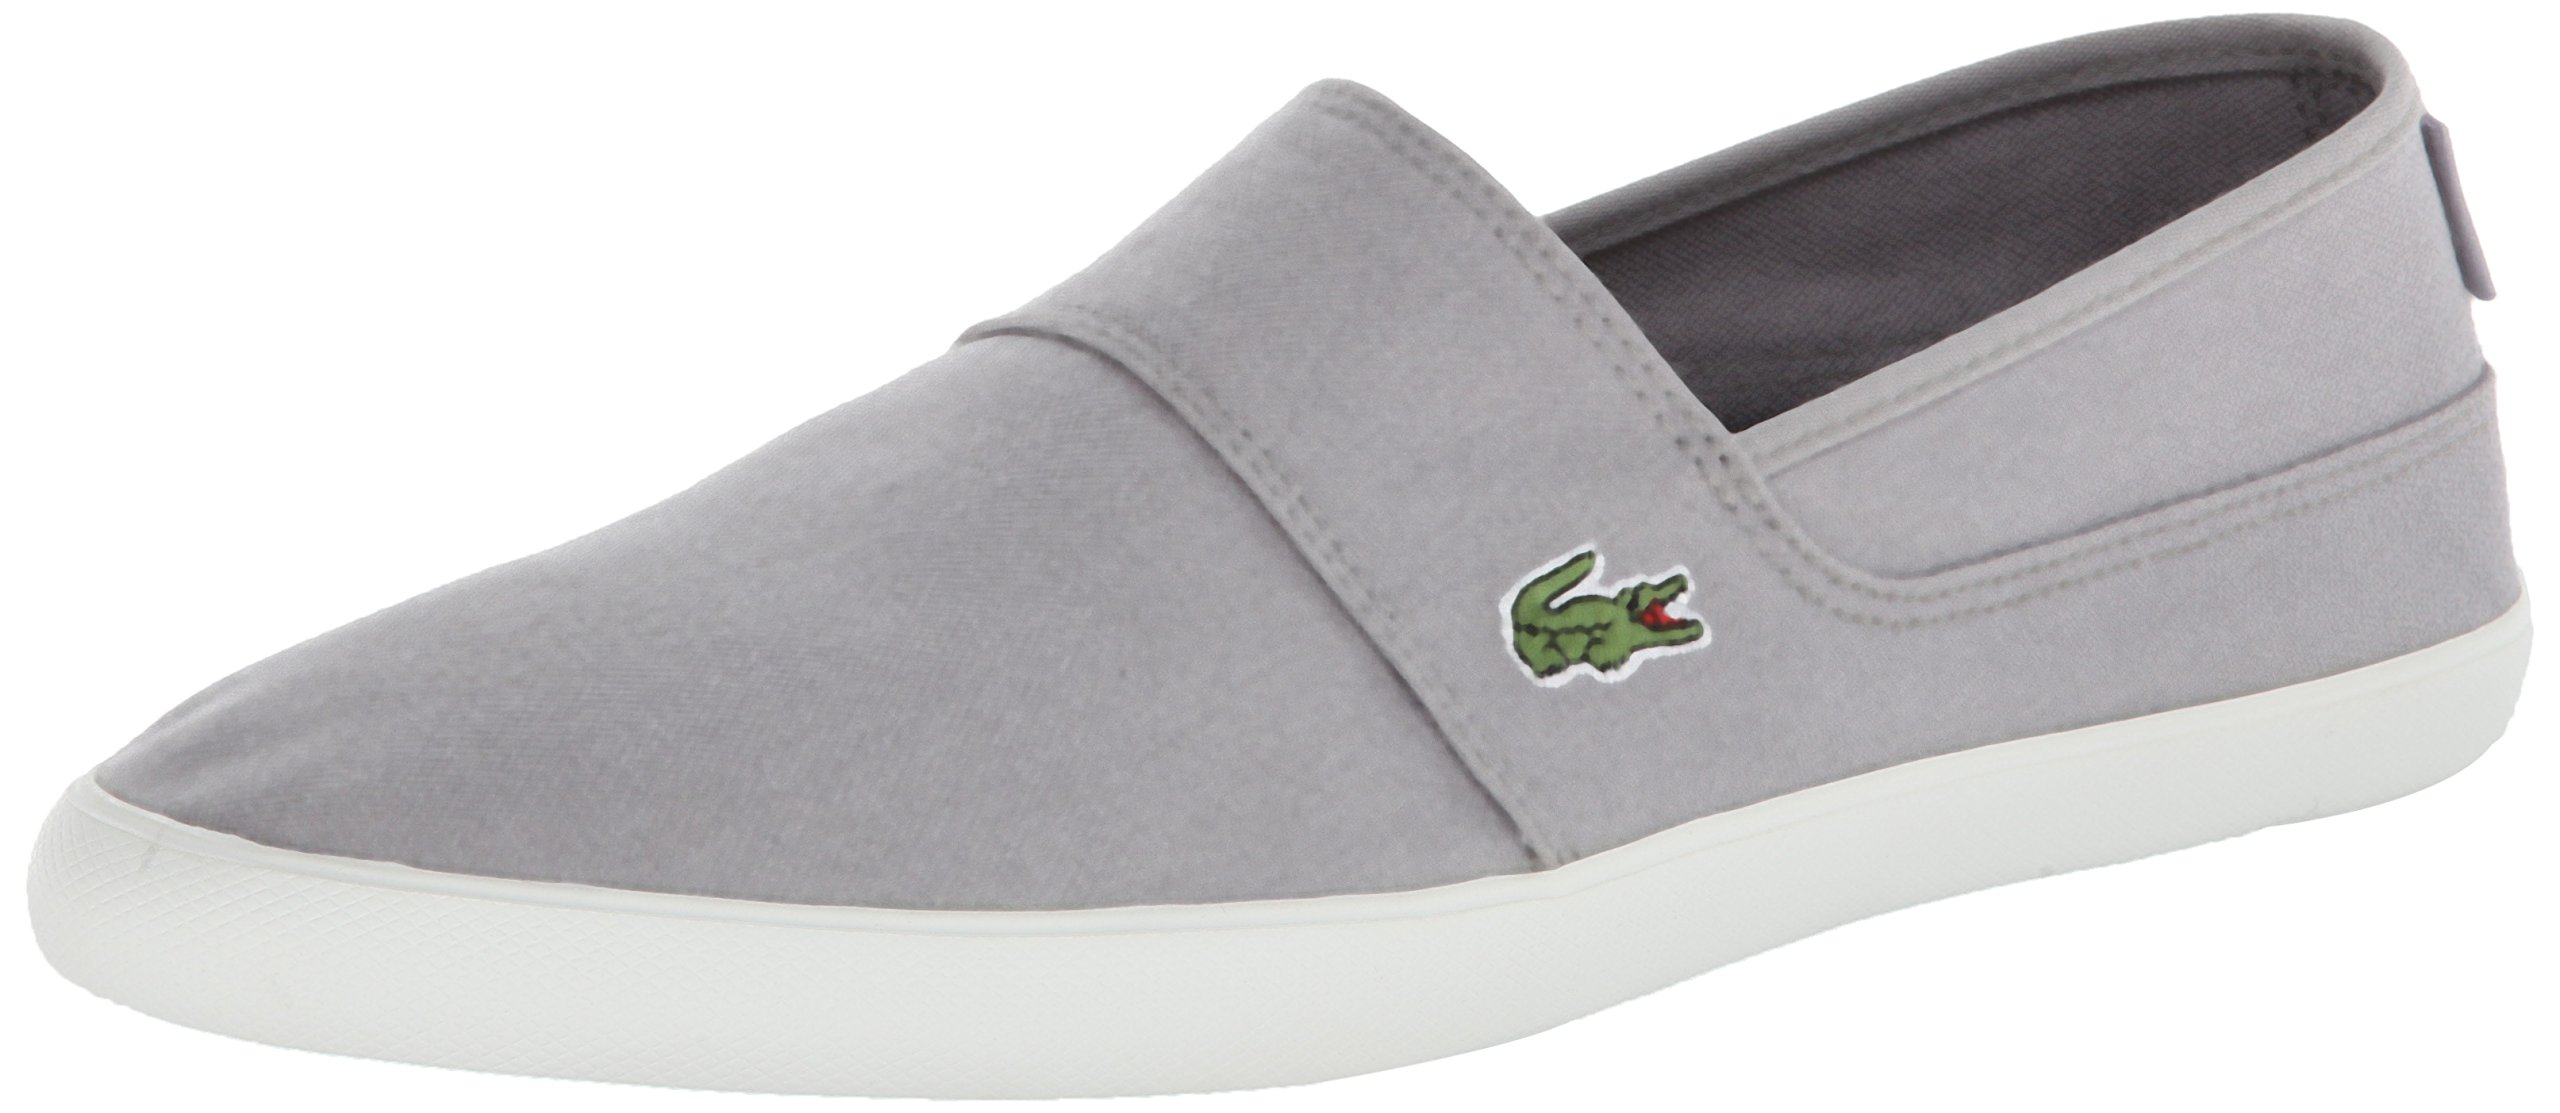 5c4920edfa352a LACOSTE MEN S MARICE CANVAS LOAFER GREY GREY 11.5 M US 887255479054 ...